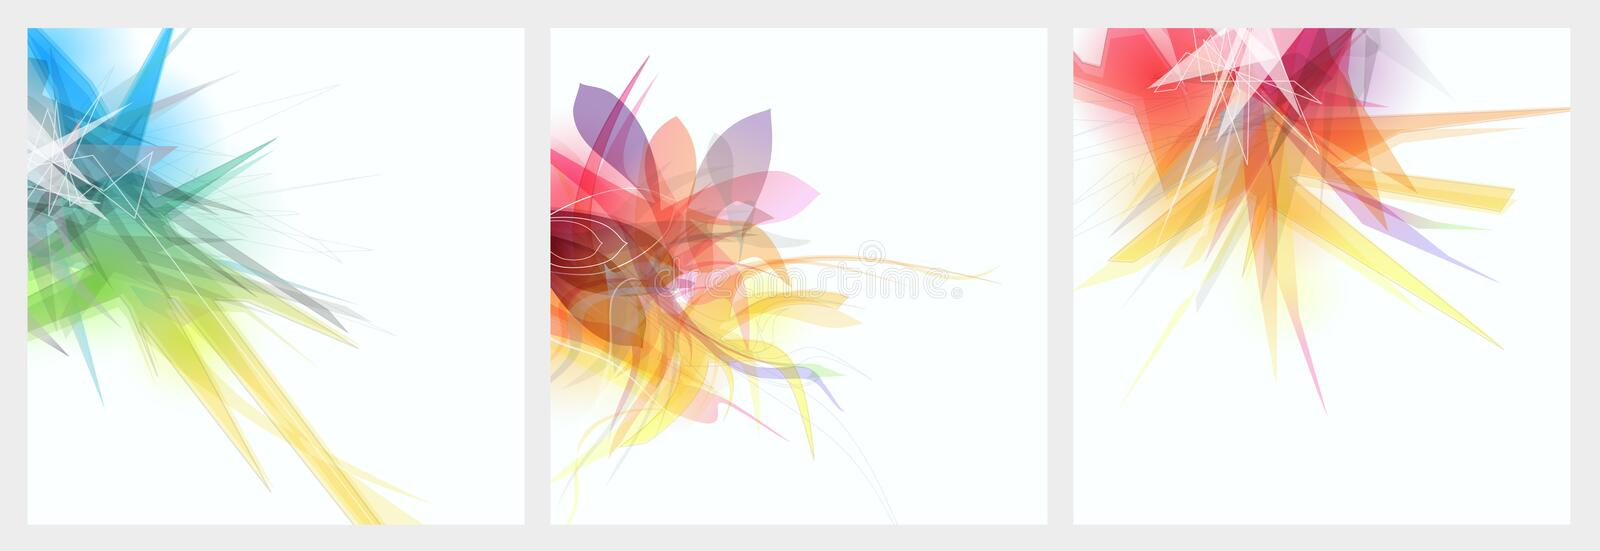 Abstract graphic background stock illustration